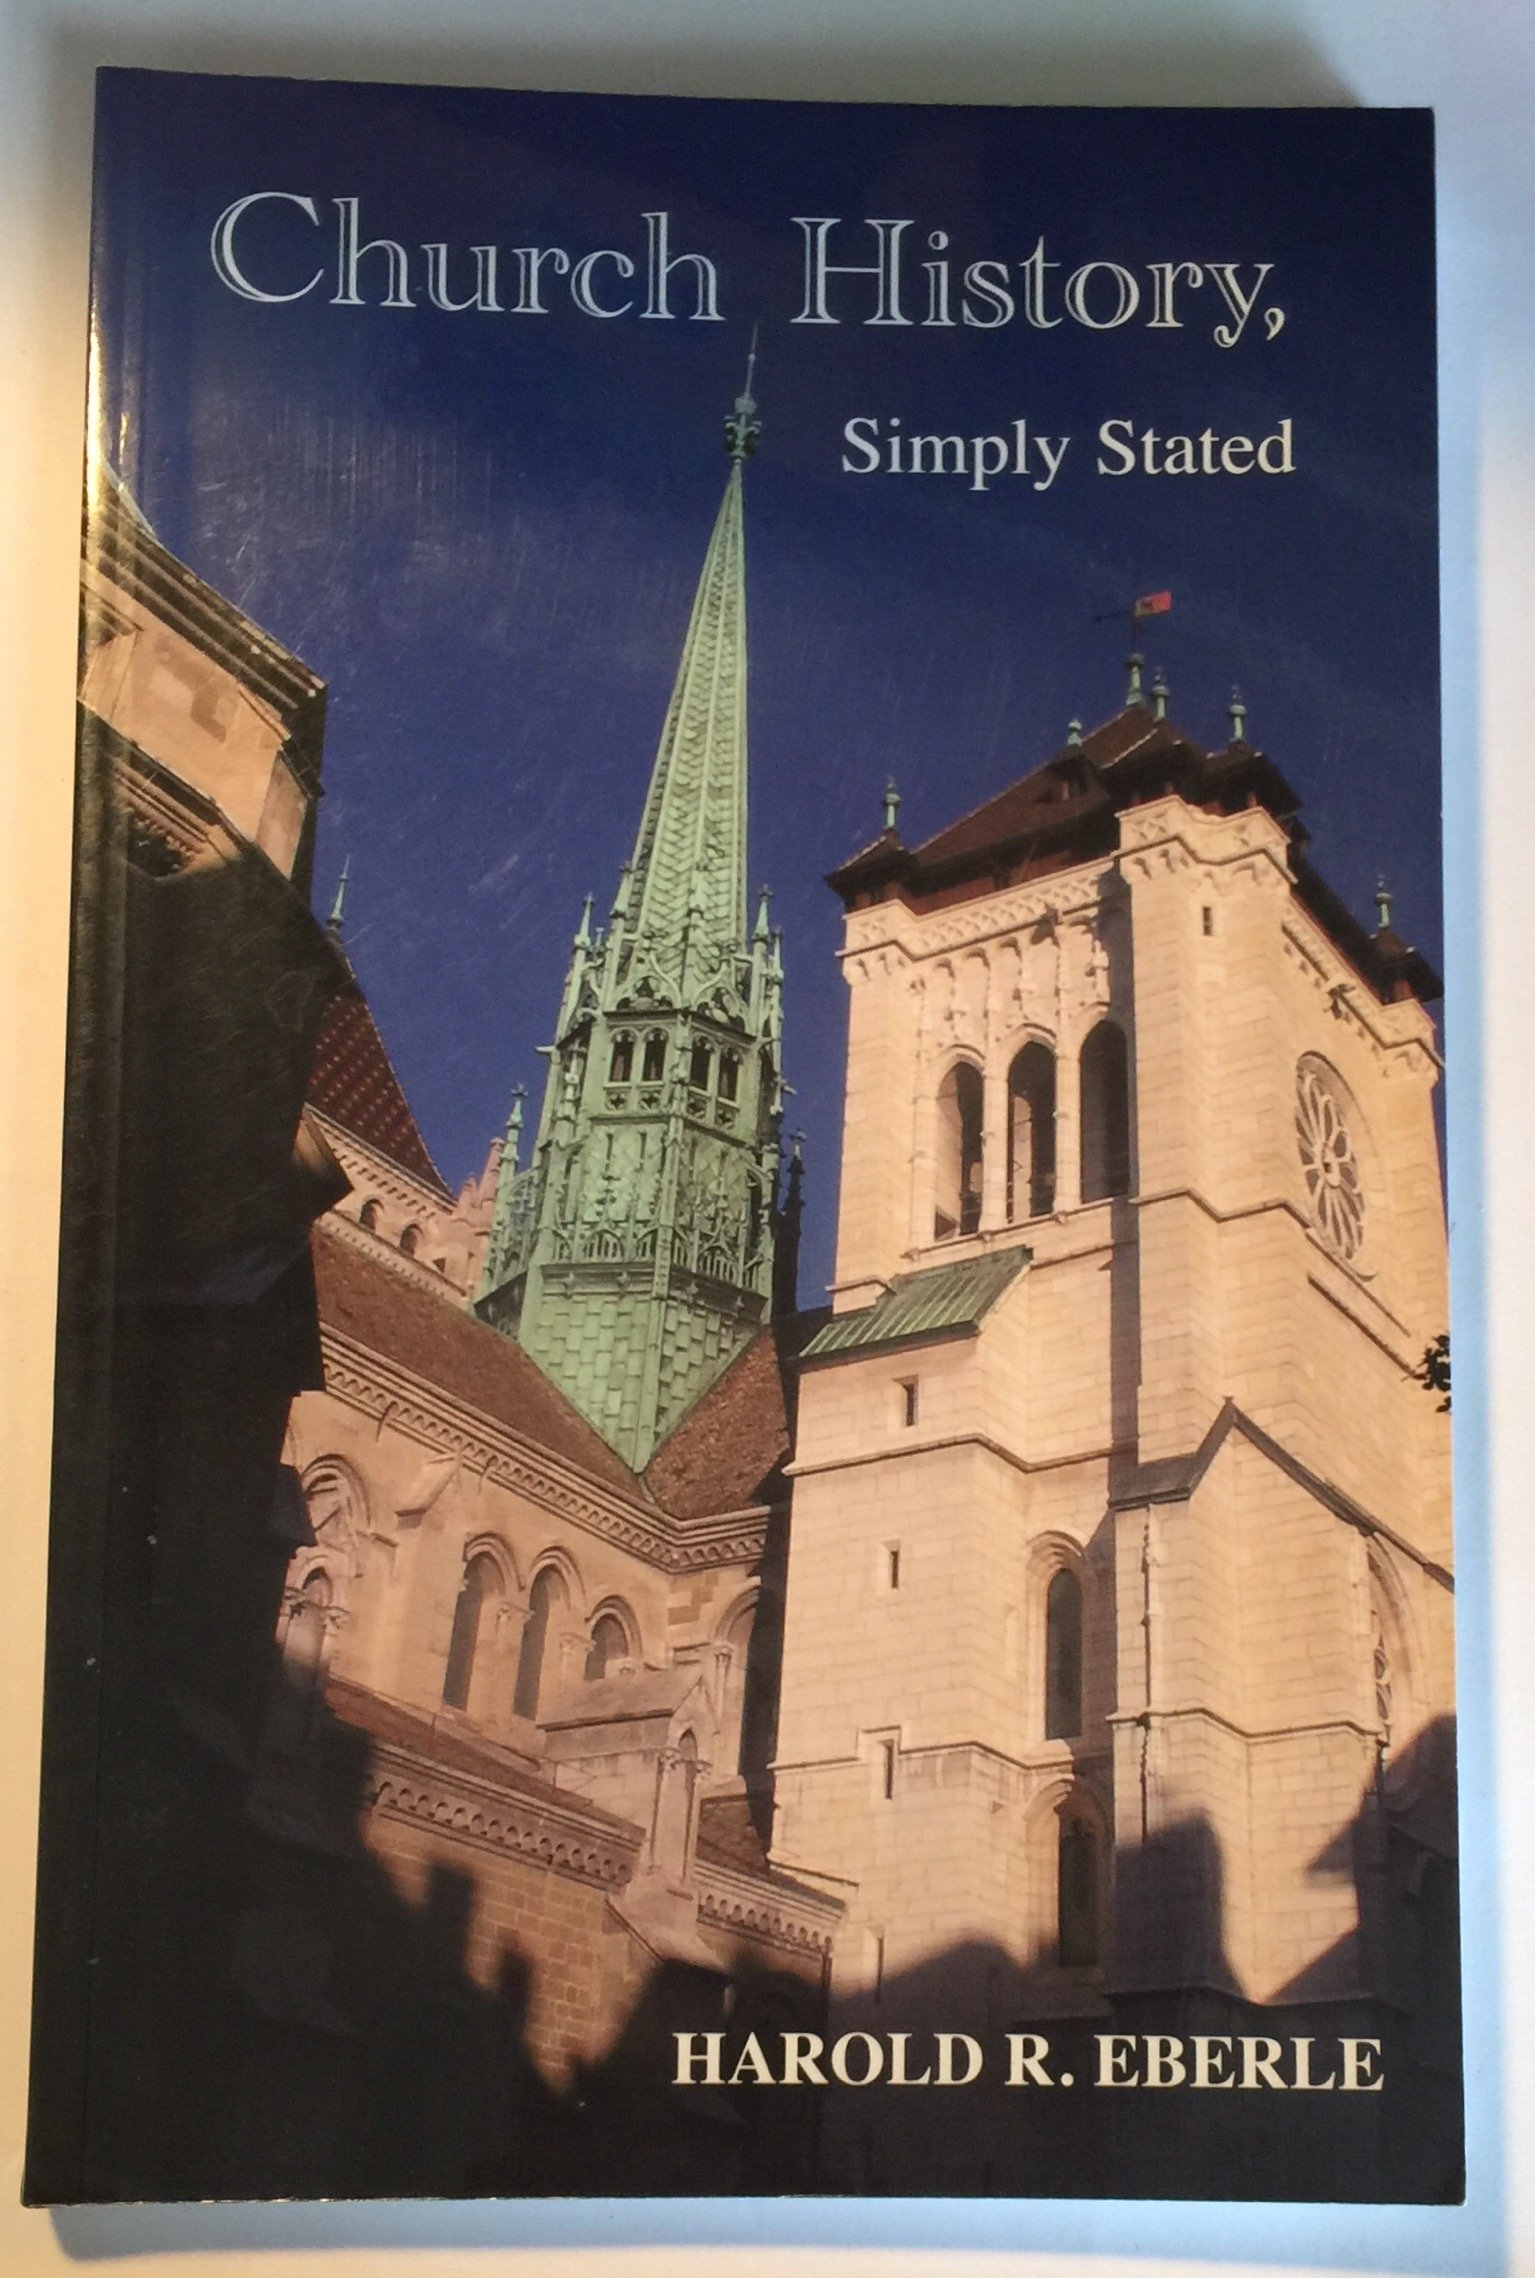 Church history simply stated harold eberle 9781882523375 amazon church history simply stated harold eberle 9781882523375 amazon books fandeluxe Choice Image